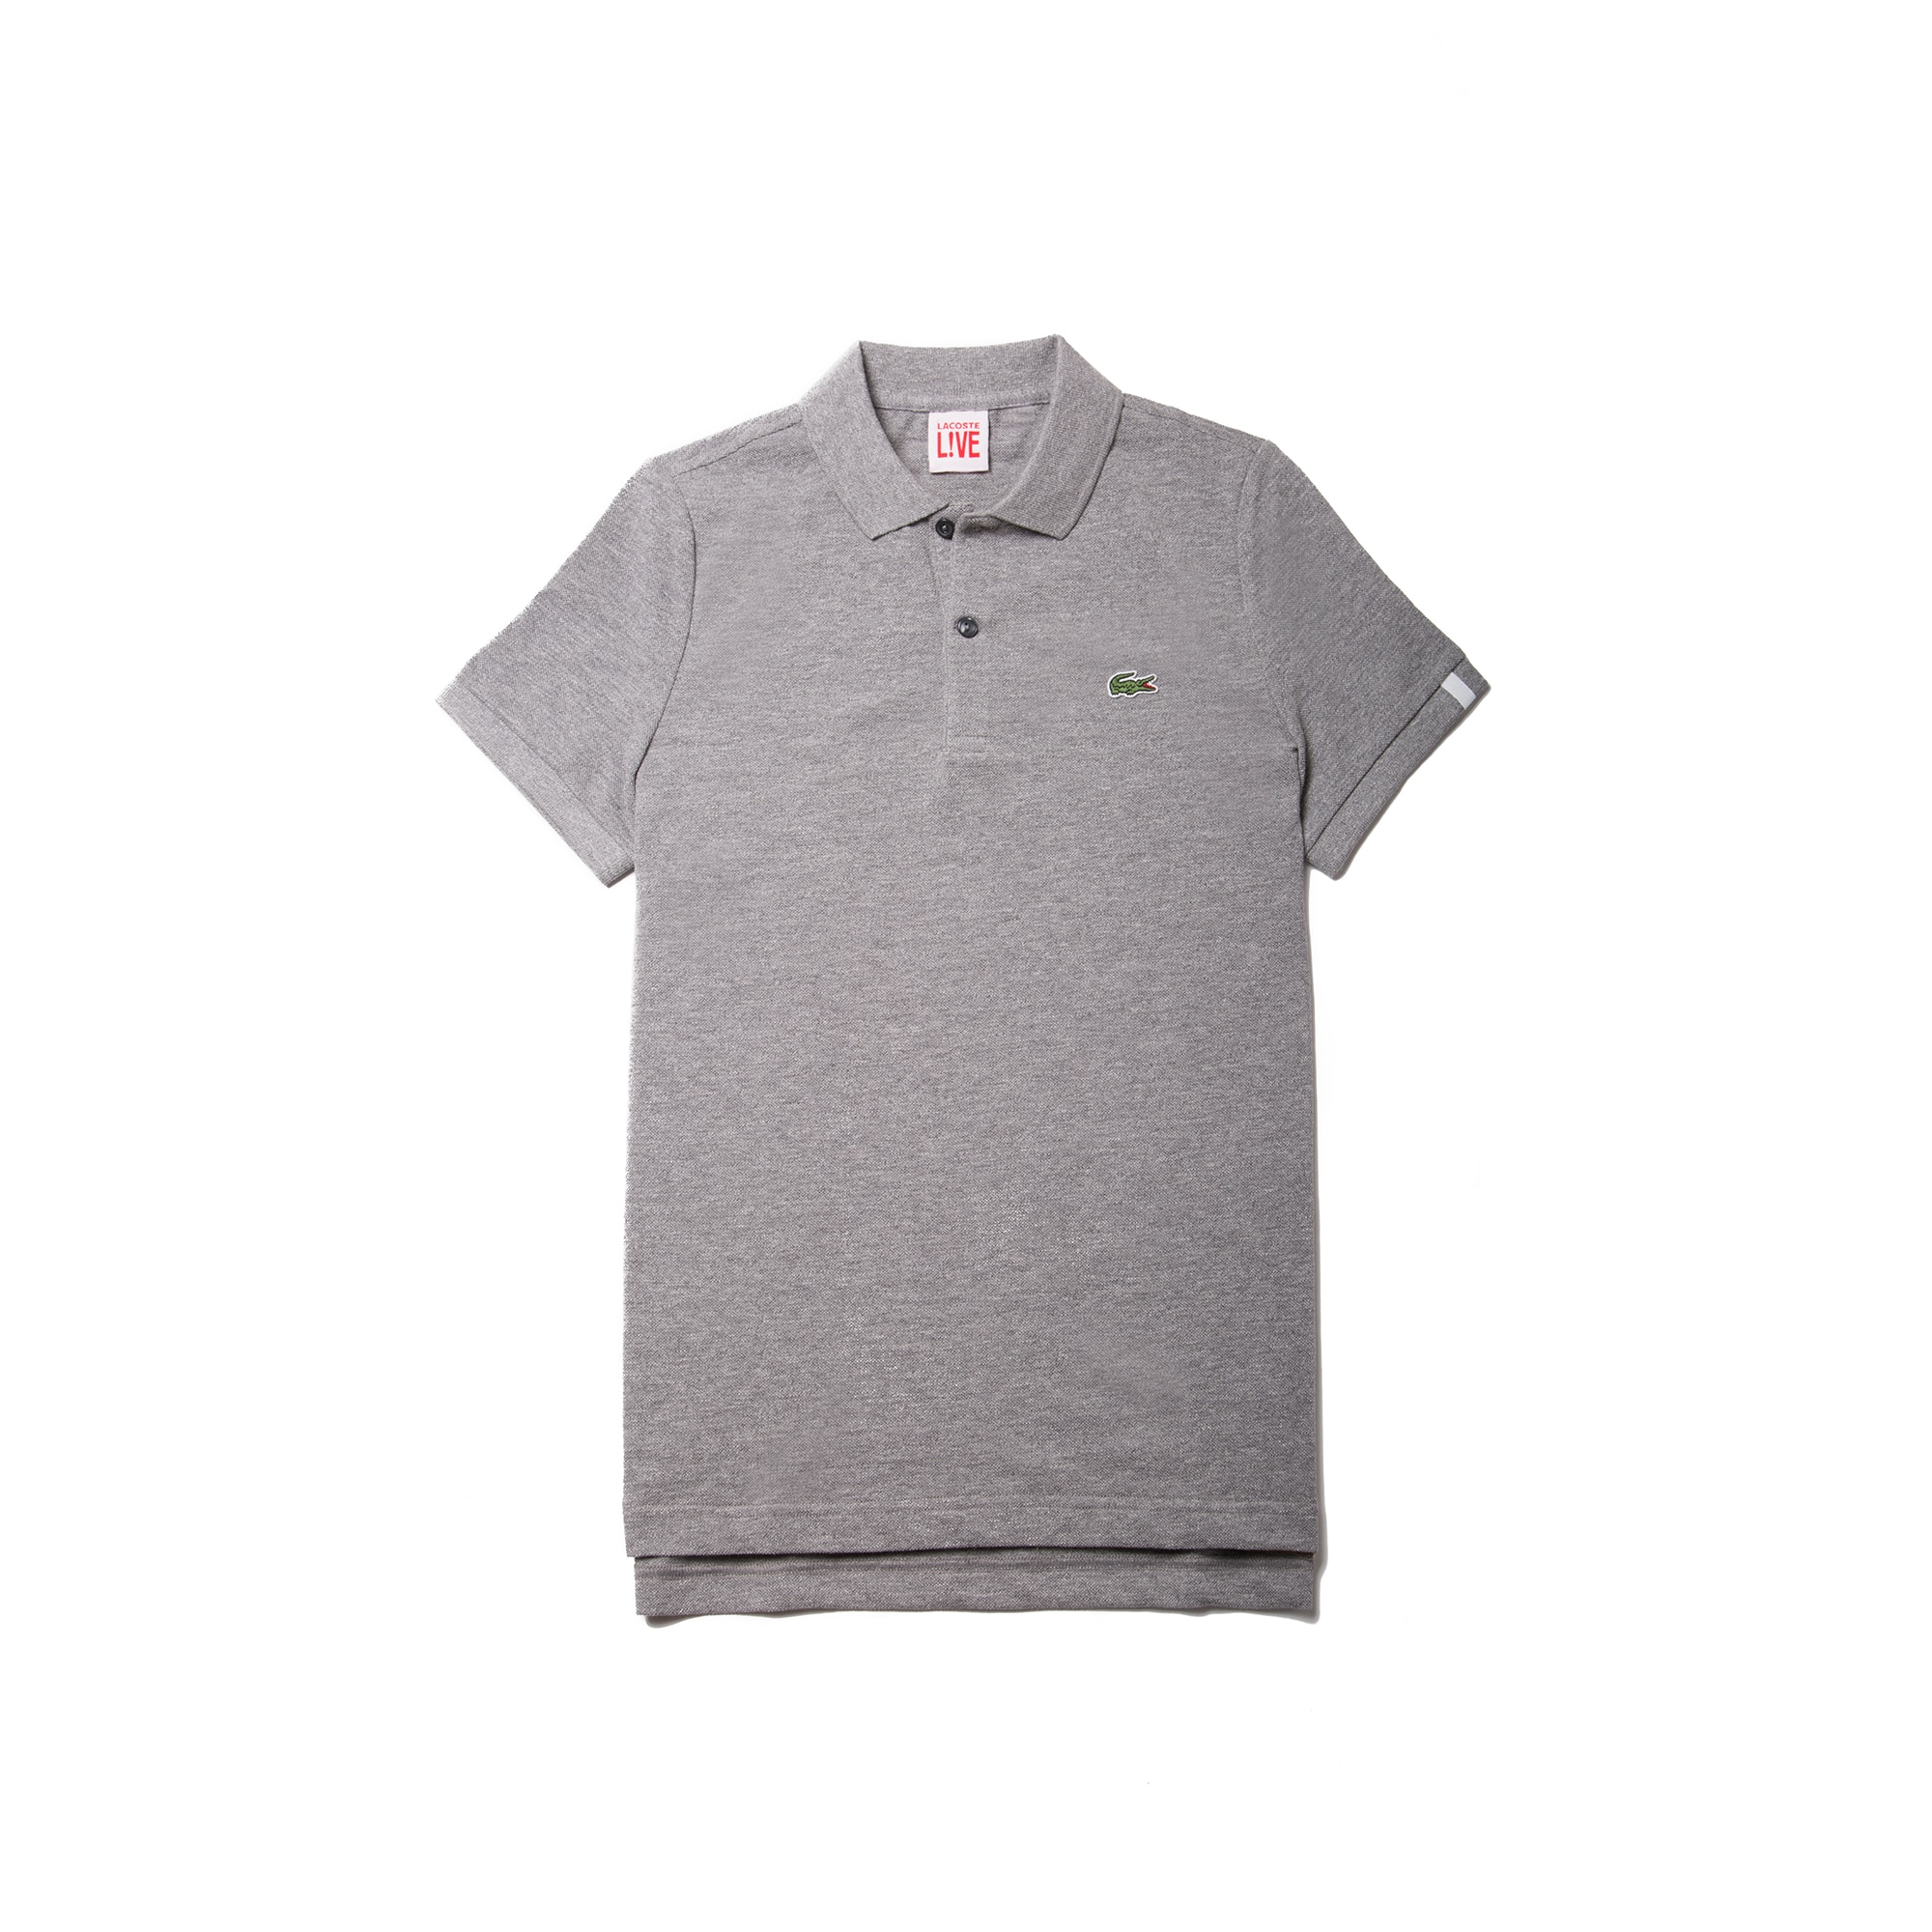 Unisex LIVE Ultra Slim Fit Petit Piqué Polo